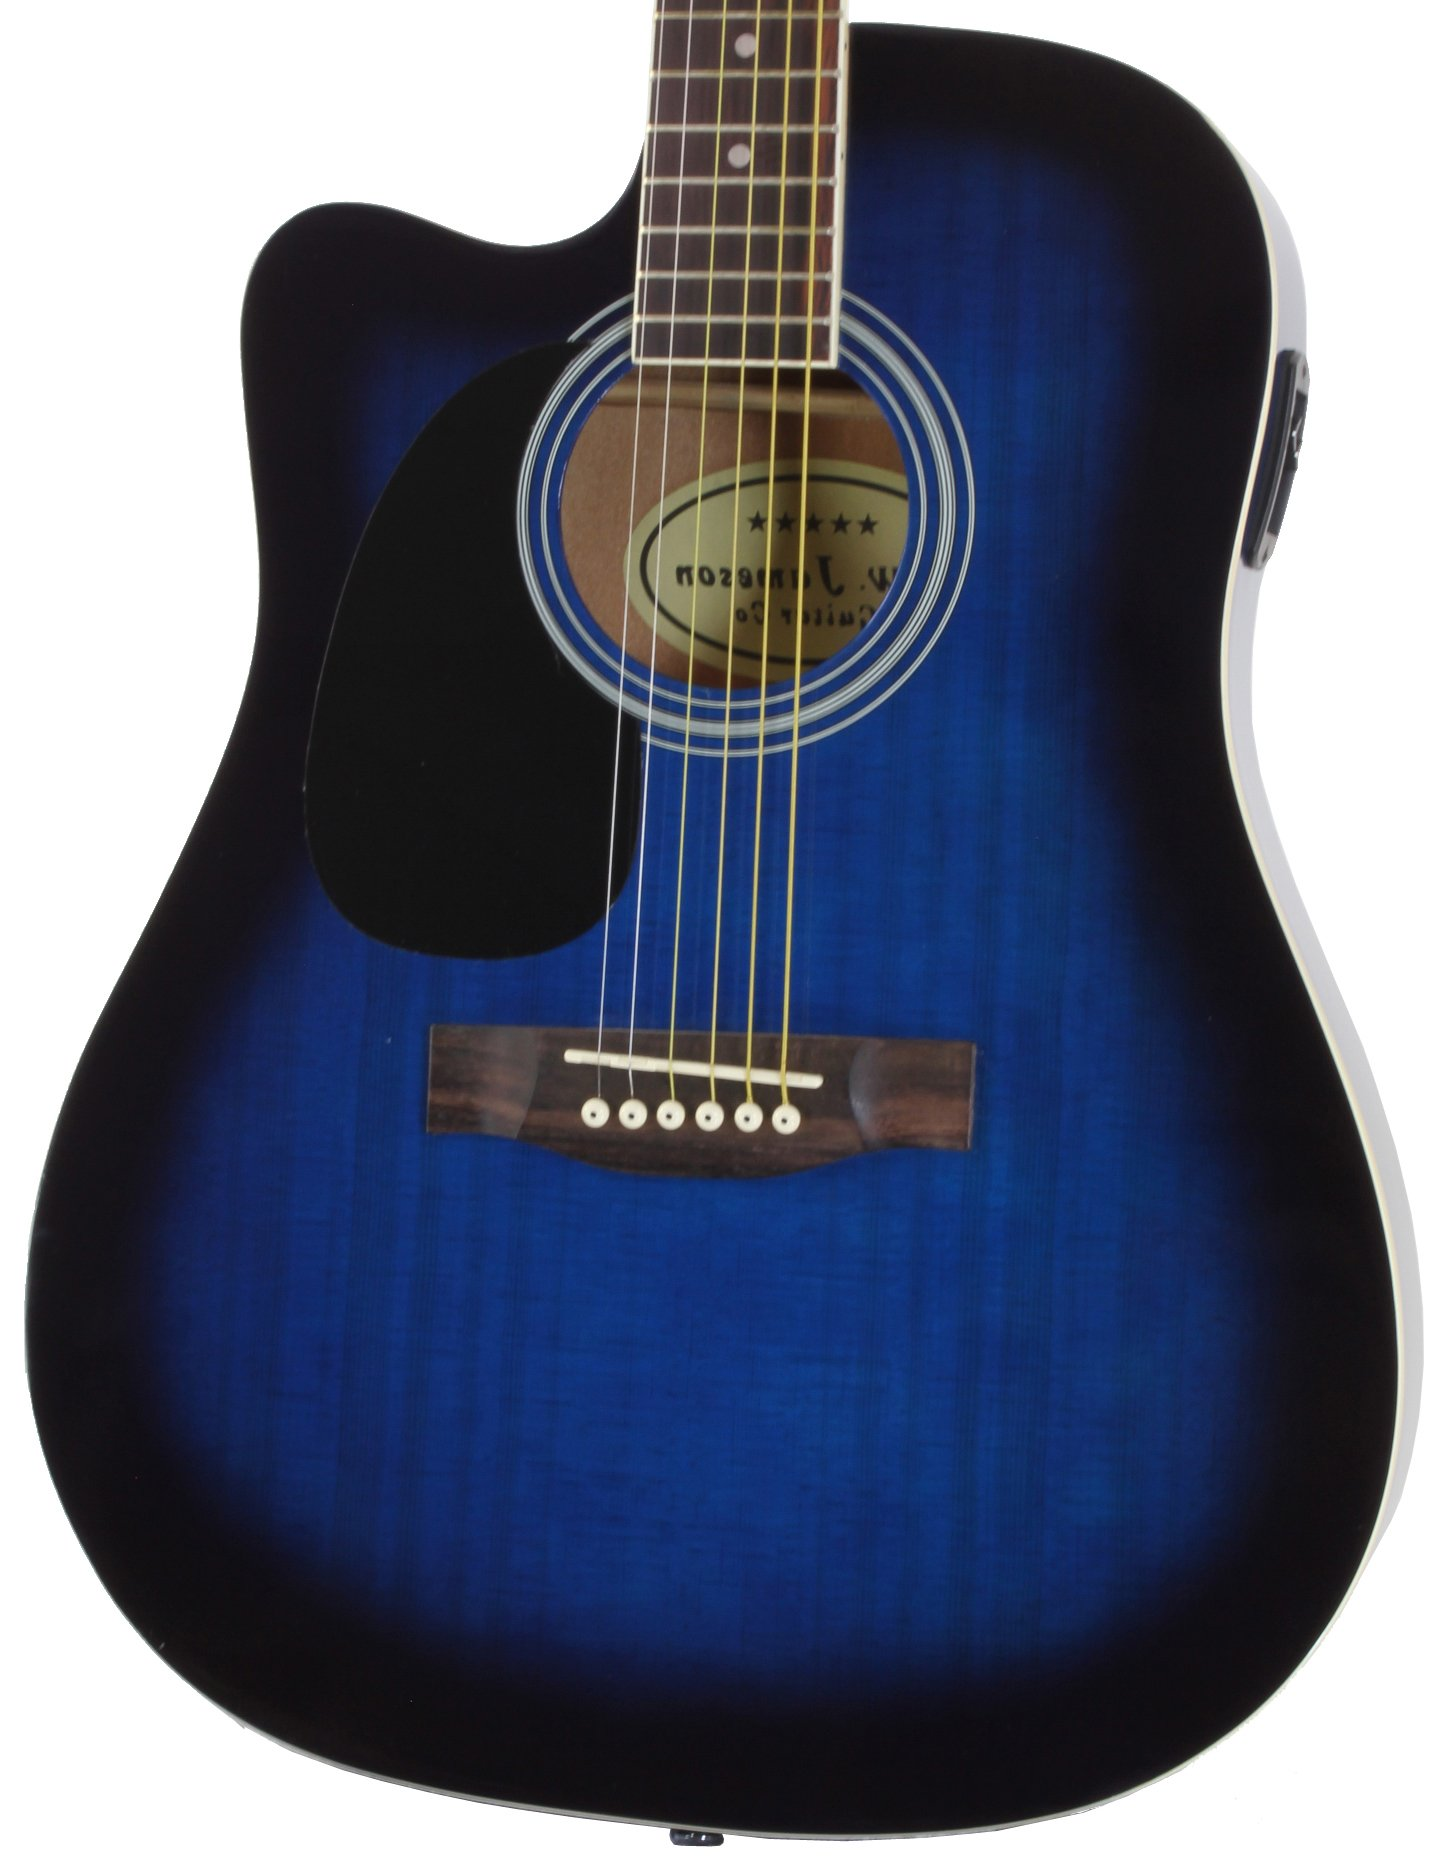 Jameson Guitars 979LH LEFT BLUE CSE Acoustic Electric Guitar with Thin line Cutaway Body with Case & Picks